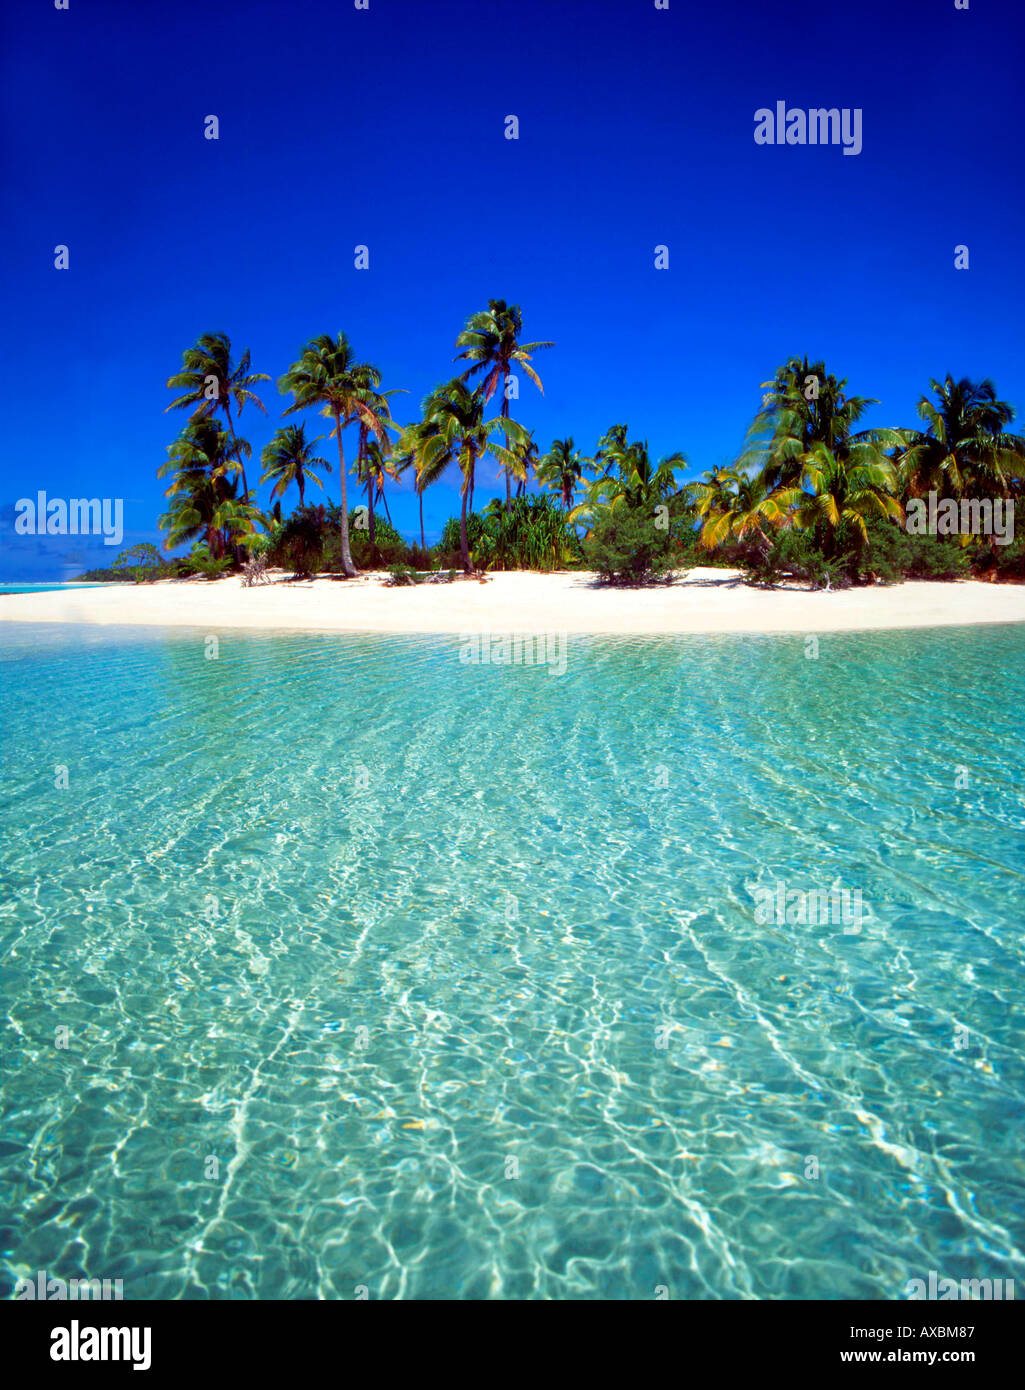 South pacific Cook Islands Aitutaki lagoon One foot Island dream beach cristal clear water - Stock Image